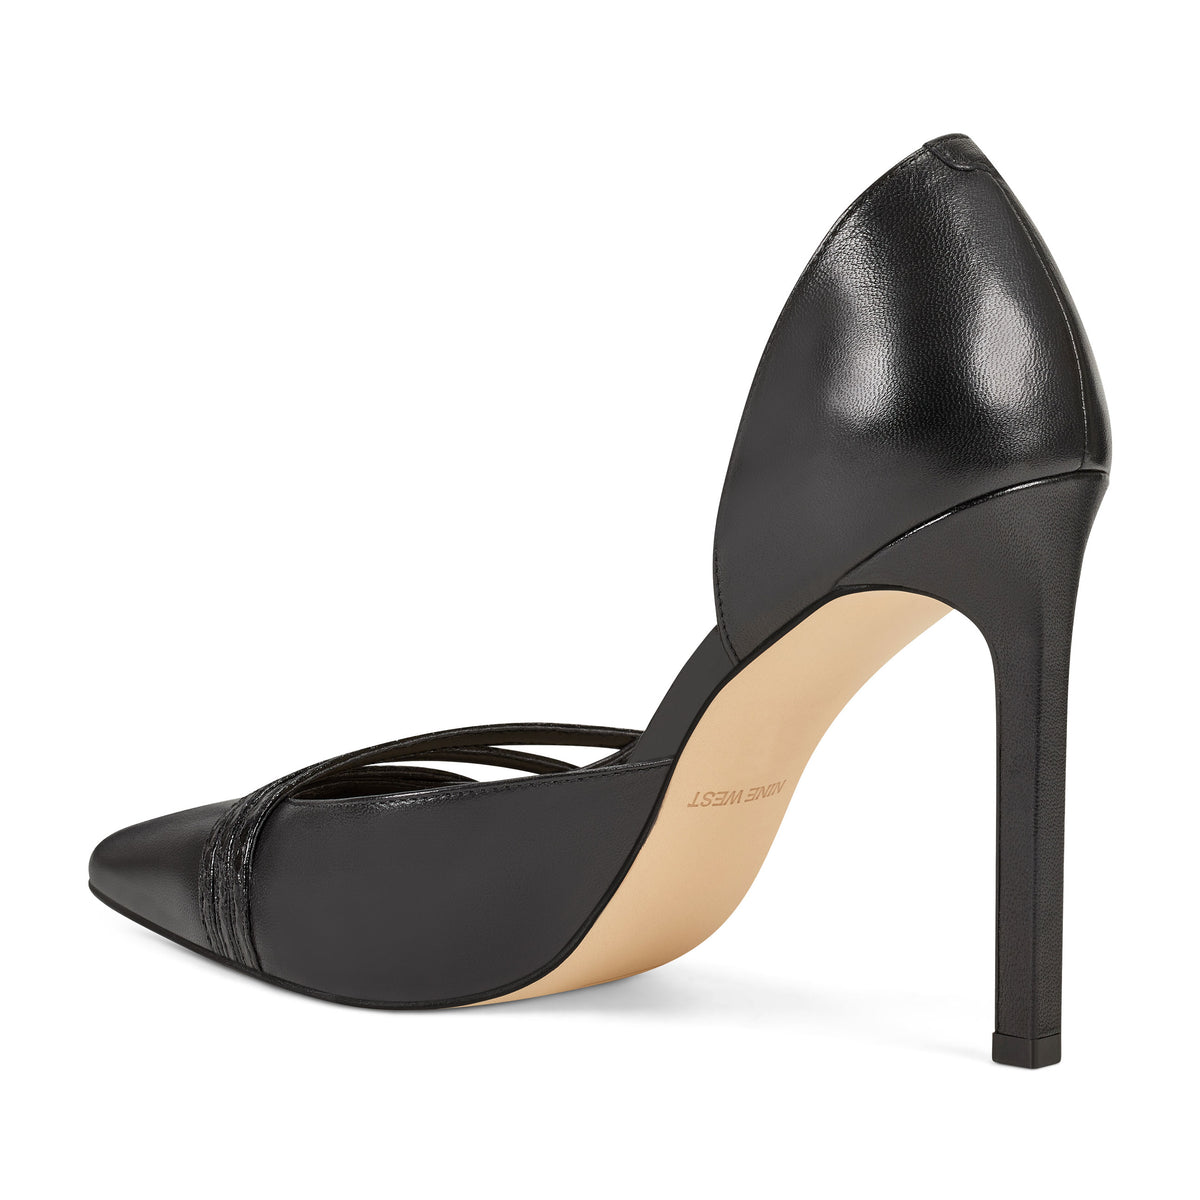 tula-dress-pumps-in-black-black